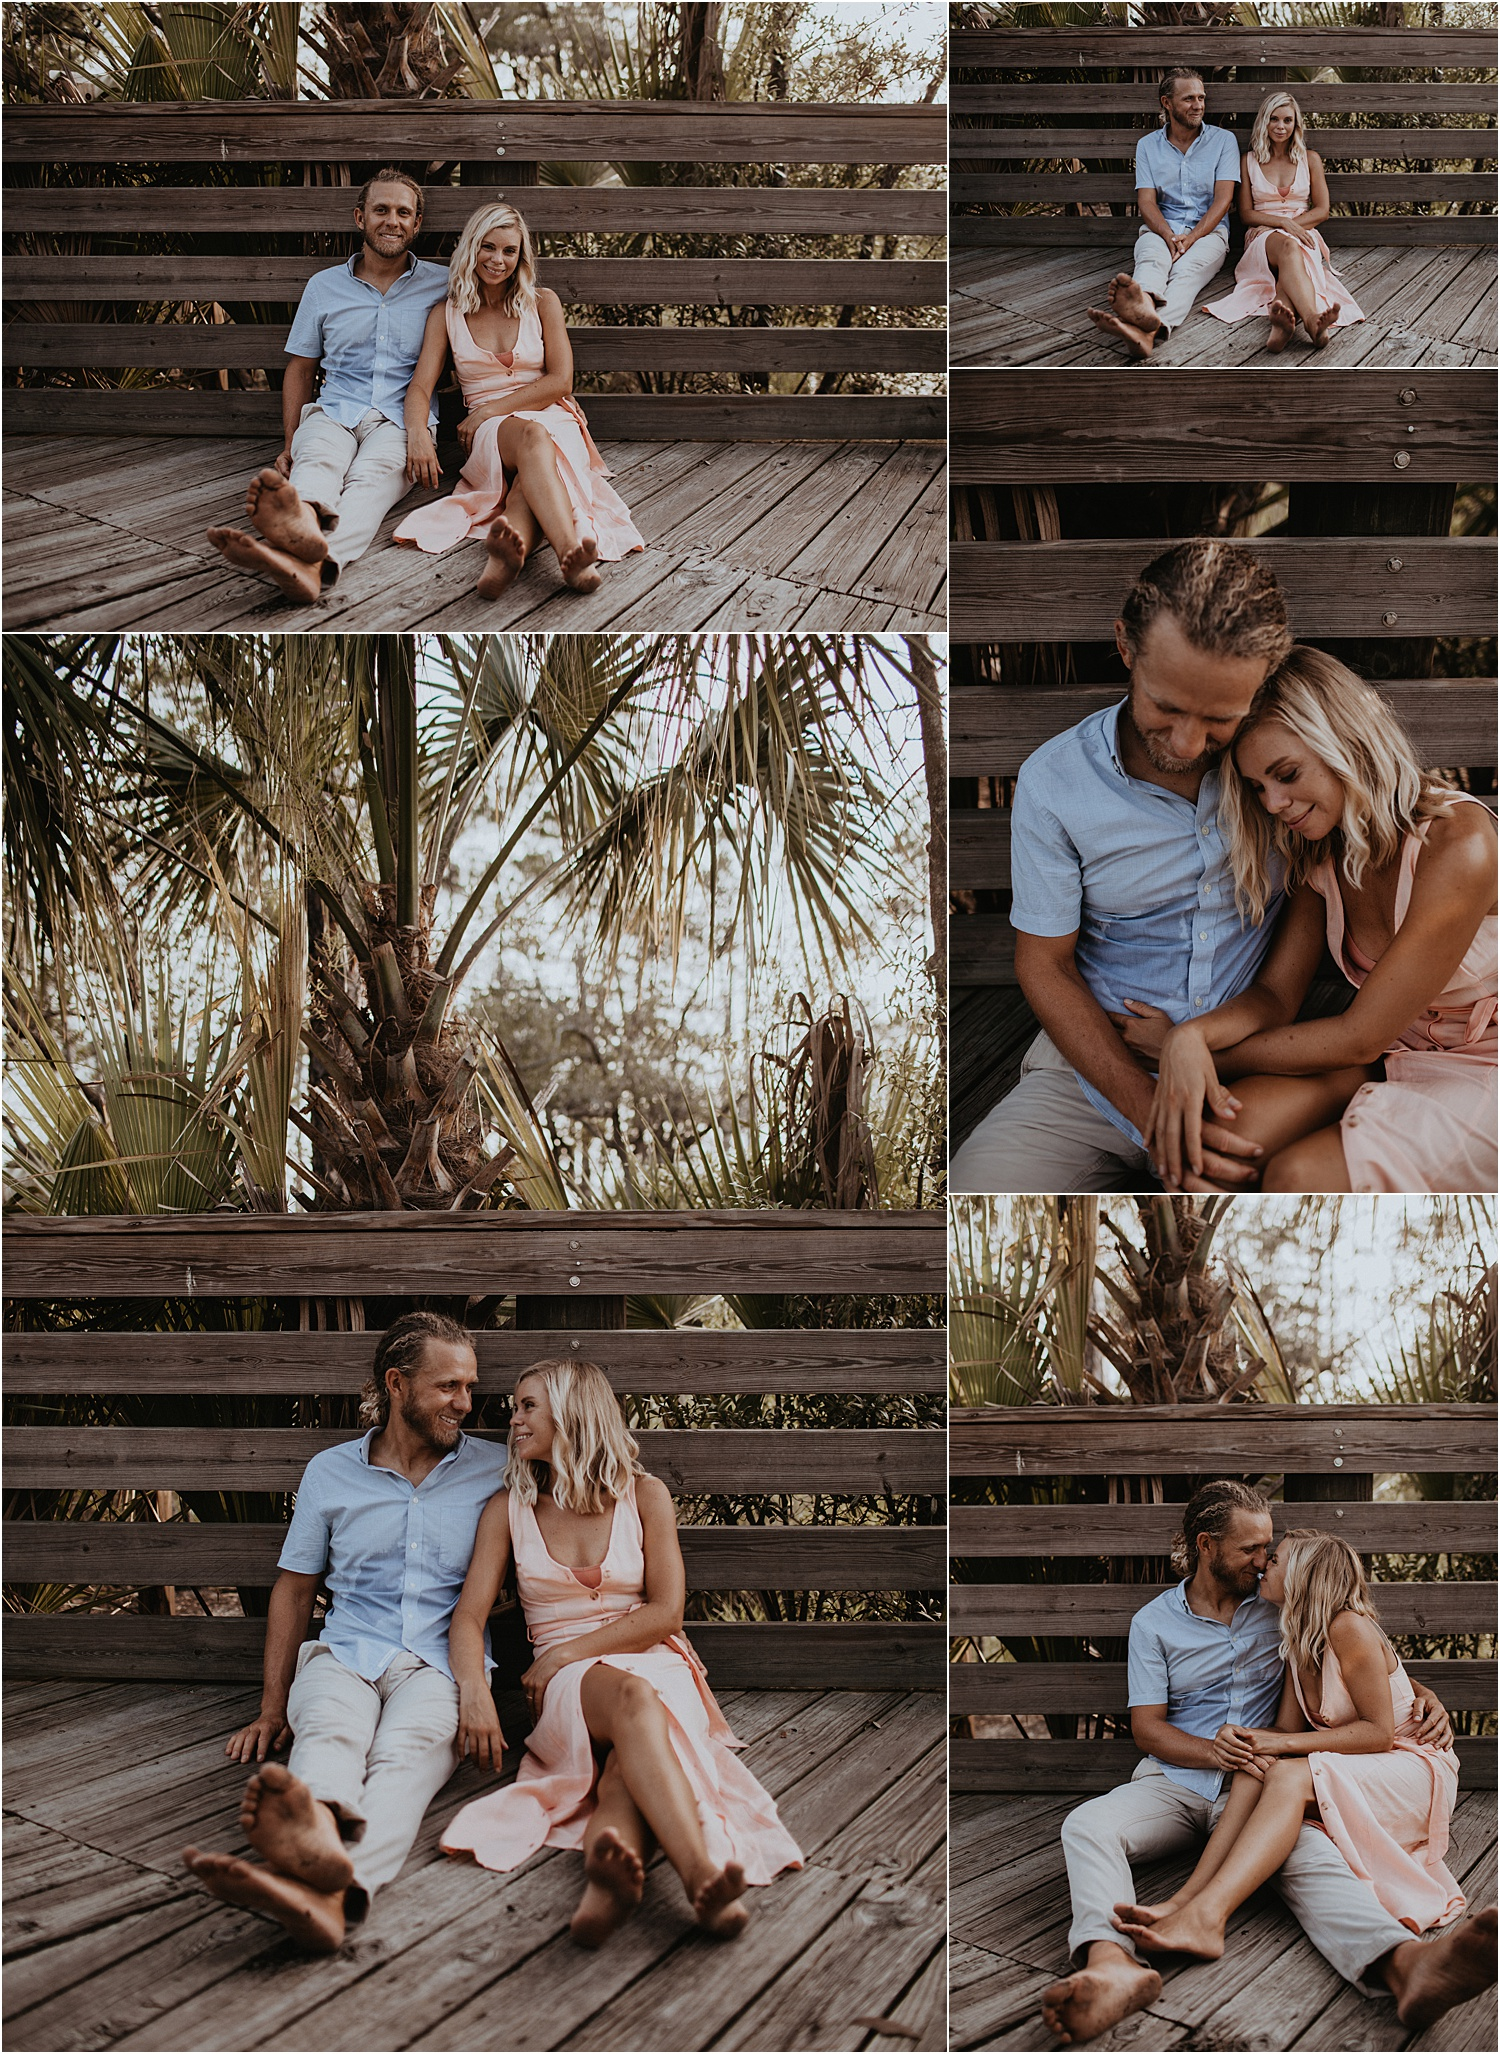 dutton-island-preserve-engagement-session-jacksonville-florida_0779.jpg